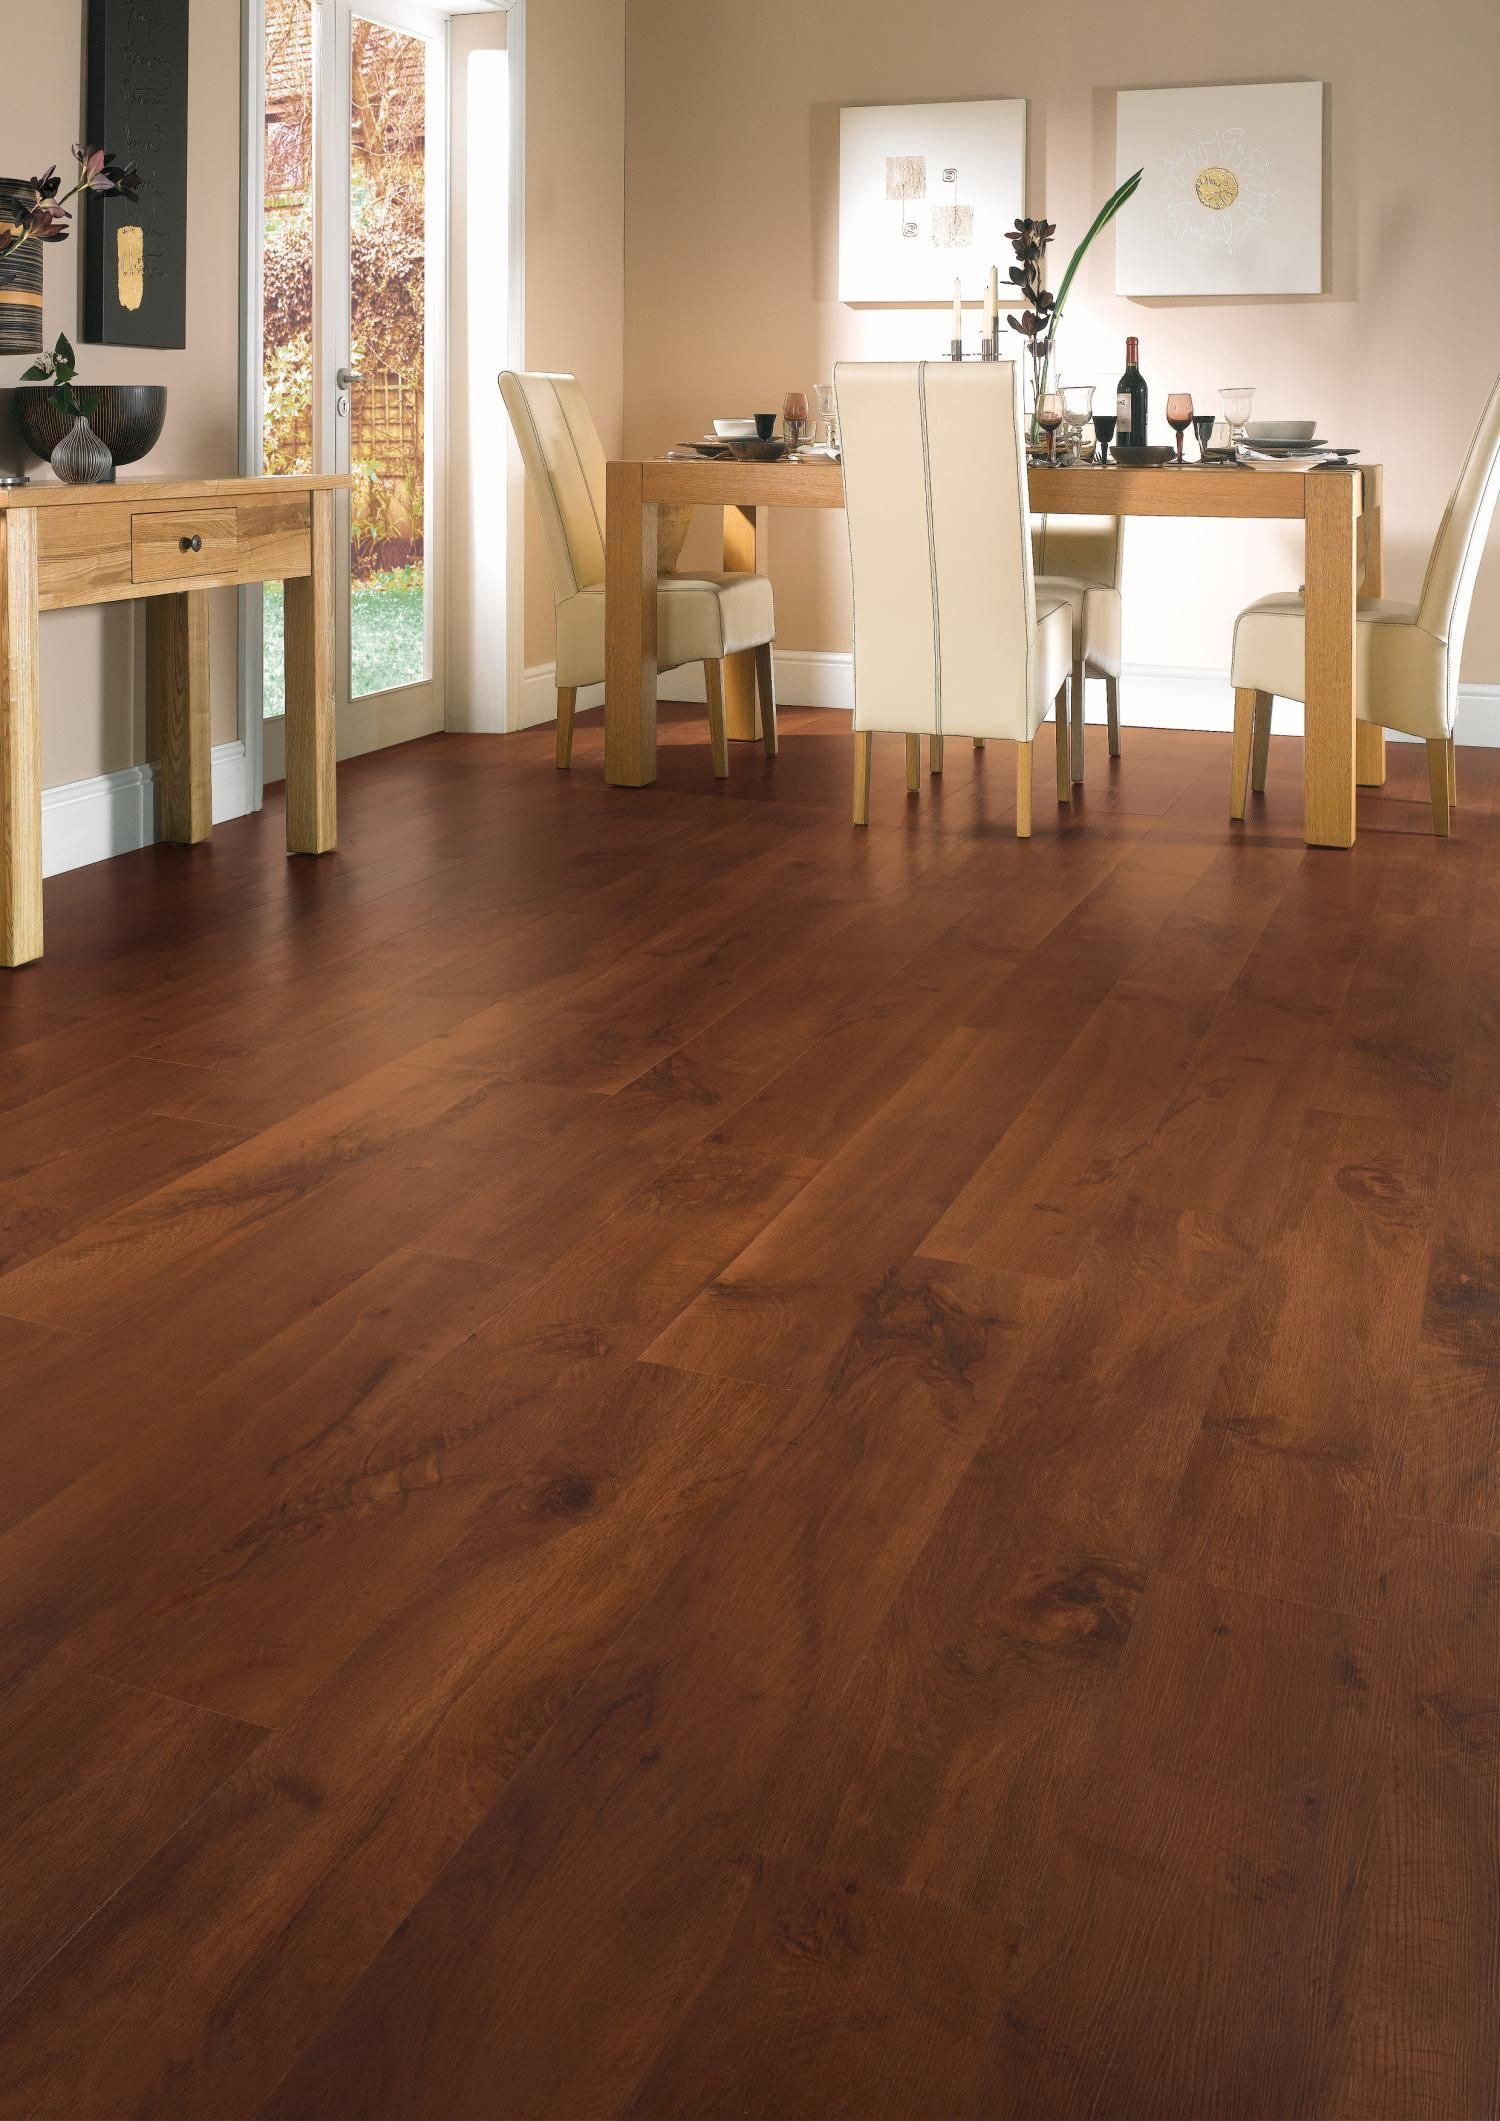 tg engineered hardwood flooring of georgia floors direct laminate and hardwood flooring ficial pergo with regard to georgia floors direct karndean vinyl plank flooring prices smoked oak